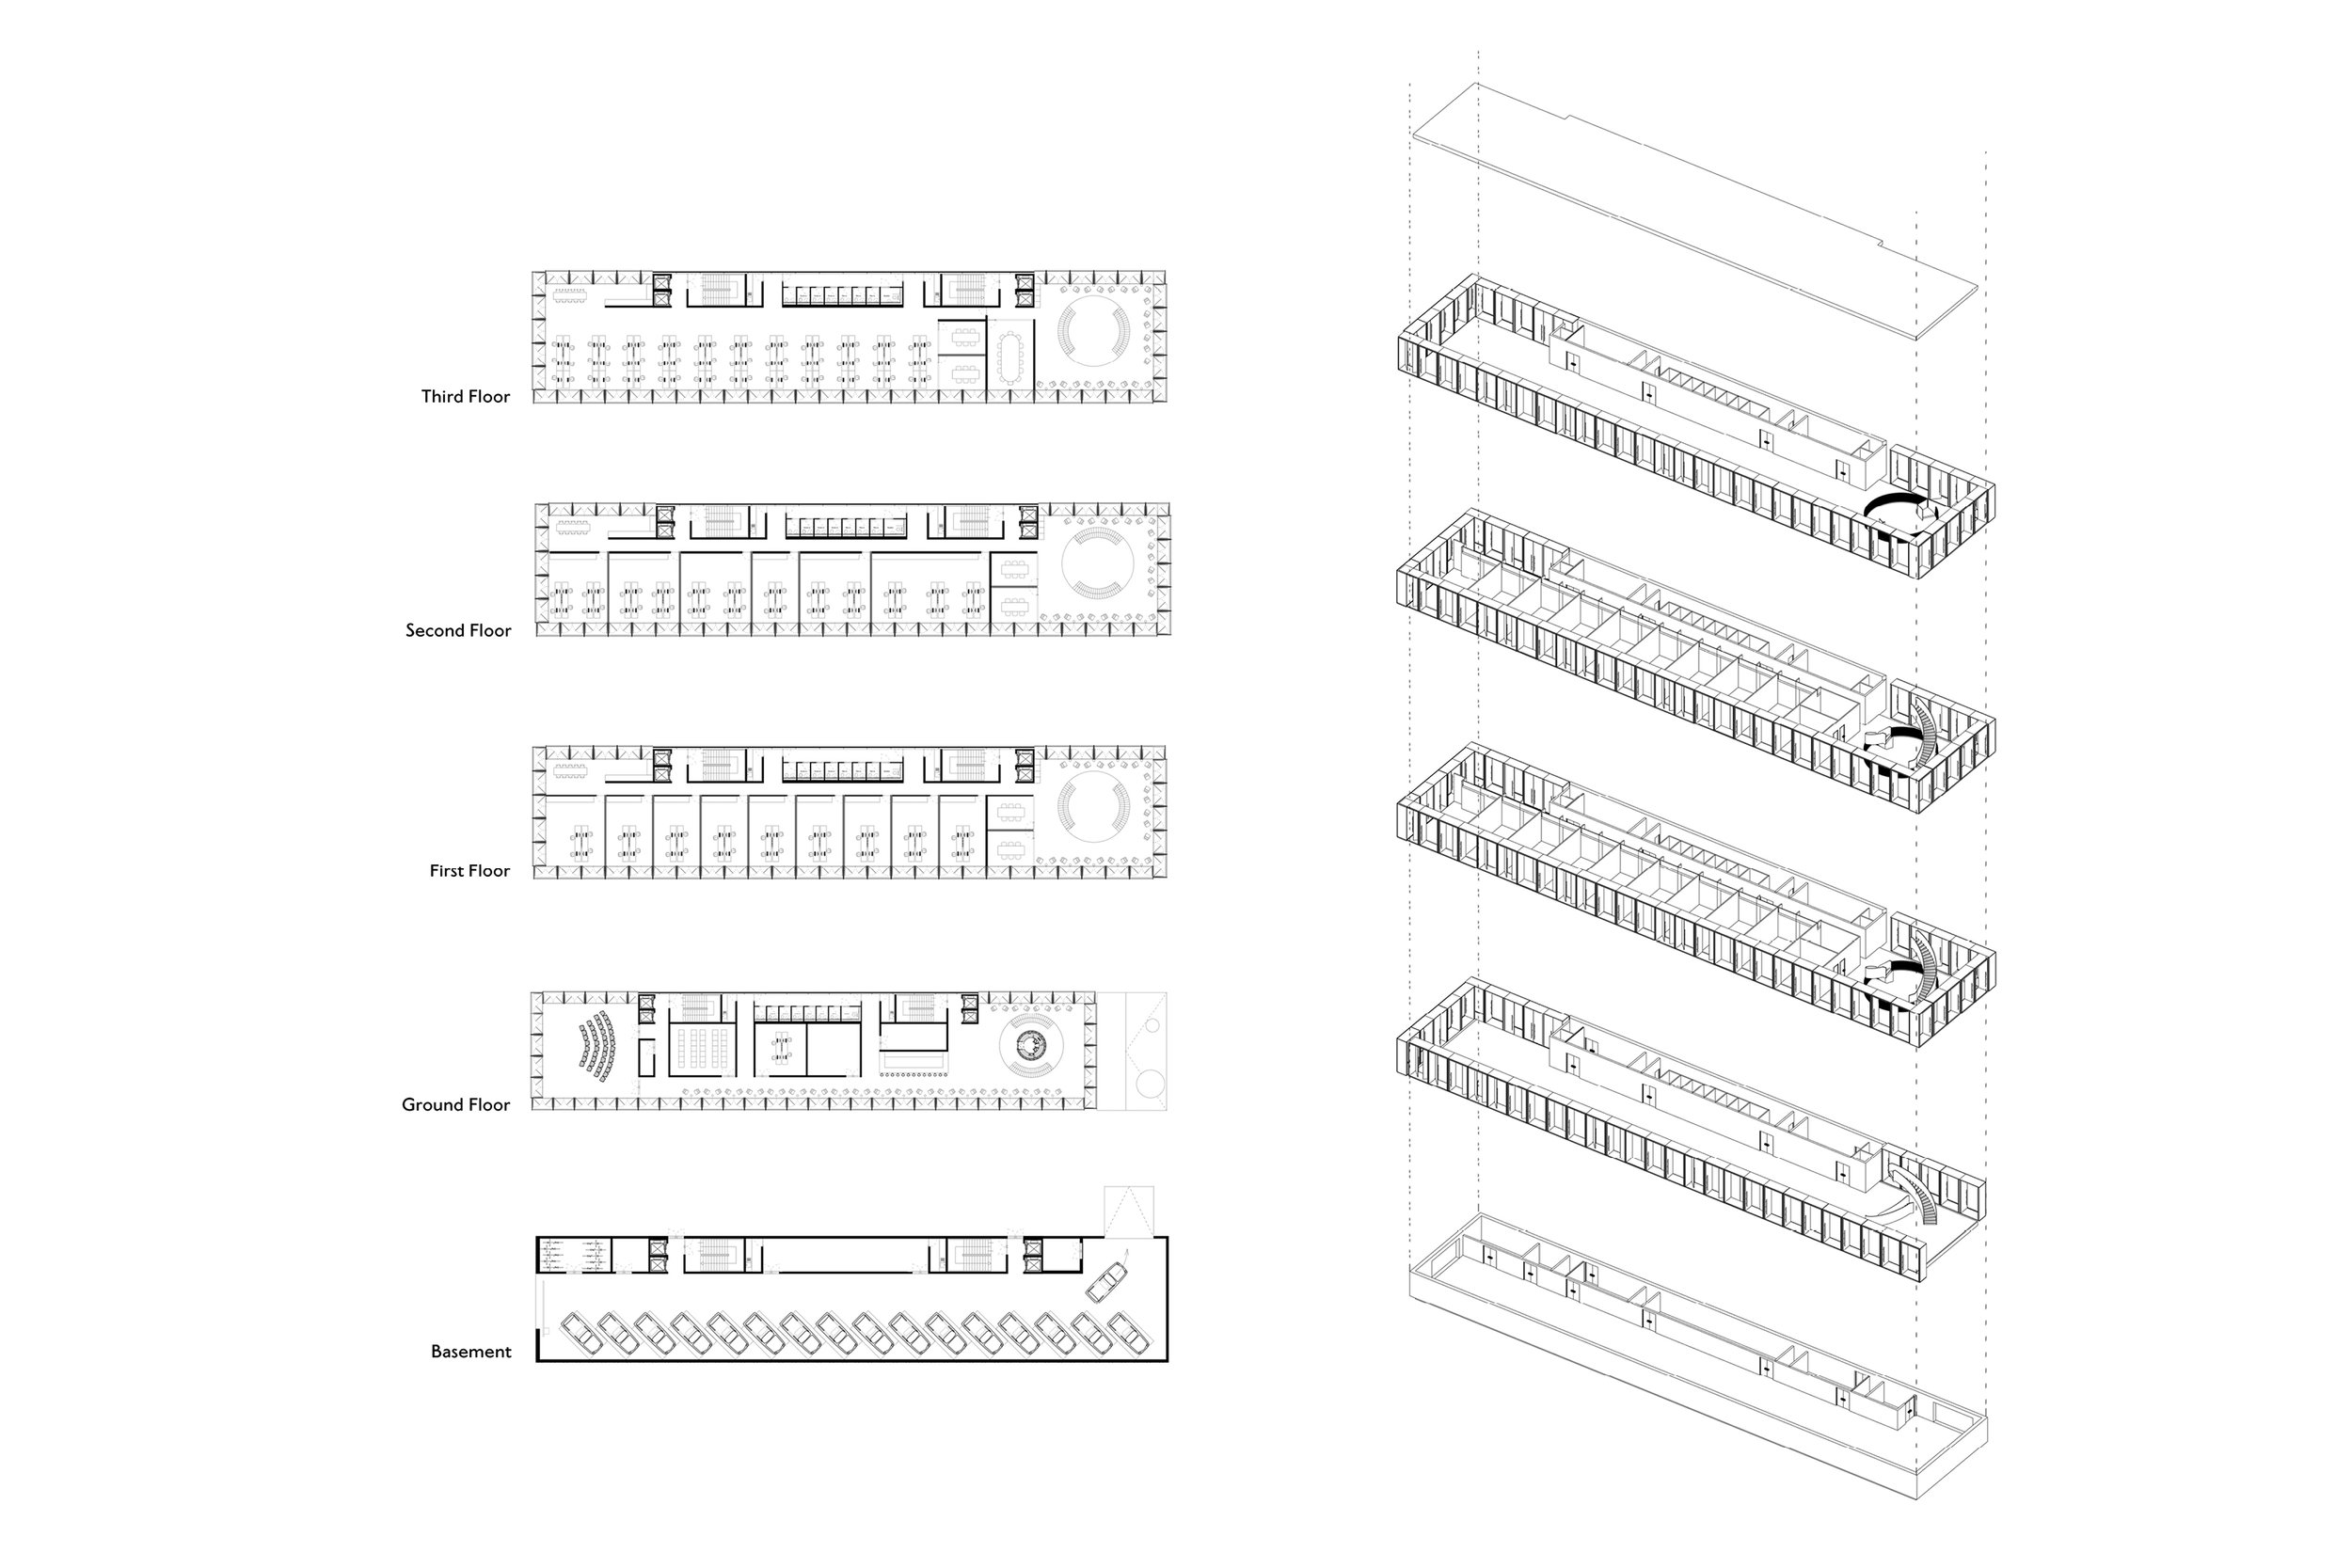 Floor Plans for BRE's Open Innovation Hub Designed by Mowat and Company